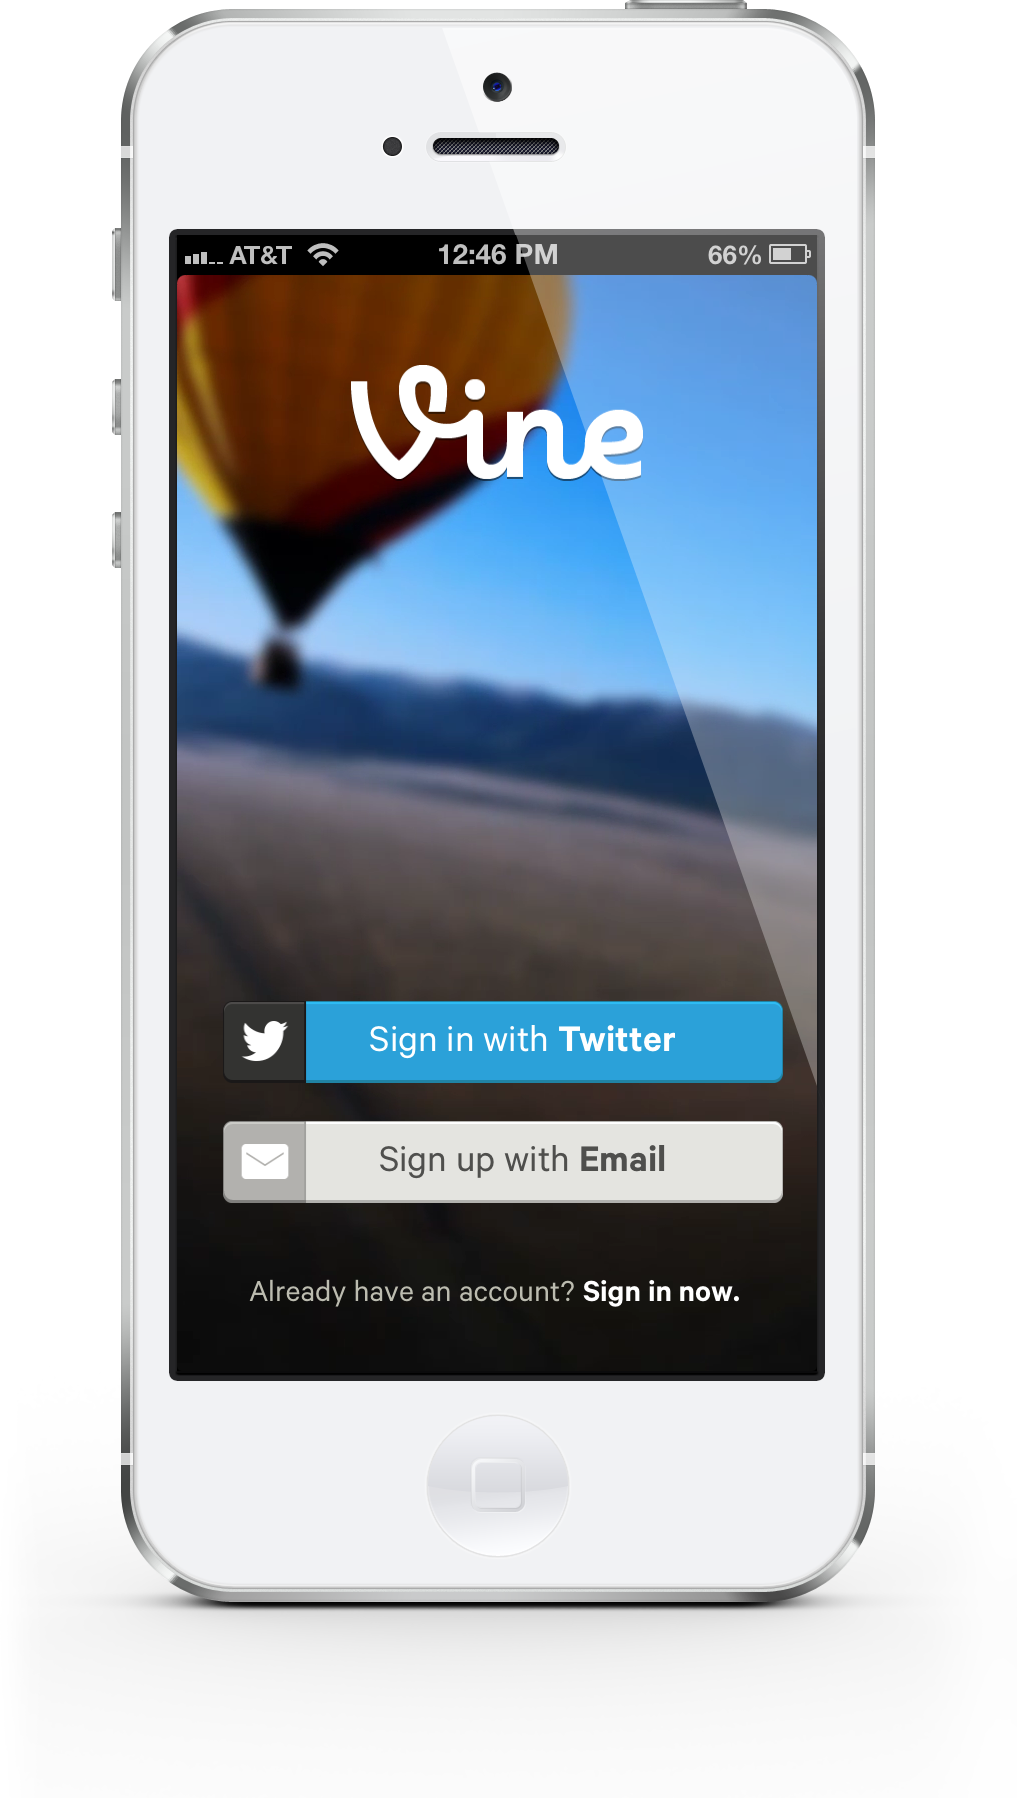 Twitter Launches Vine Video-Sharing Service For iPhone